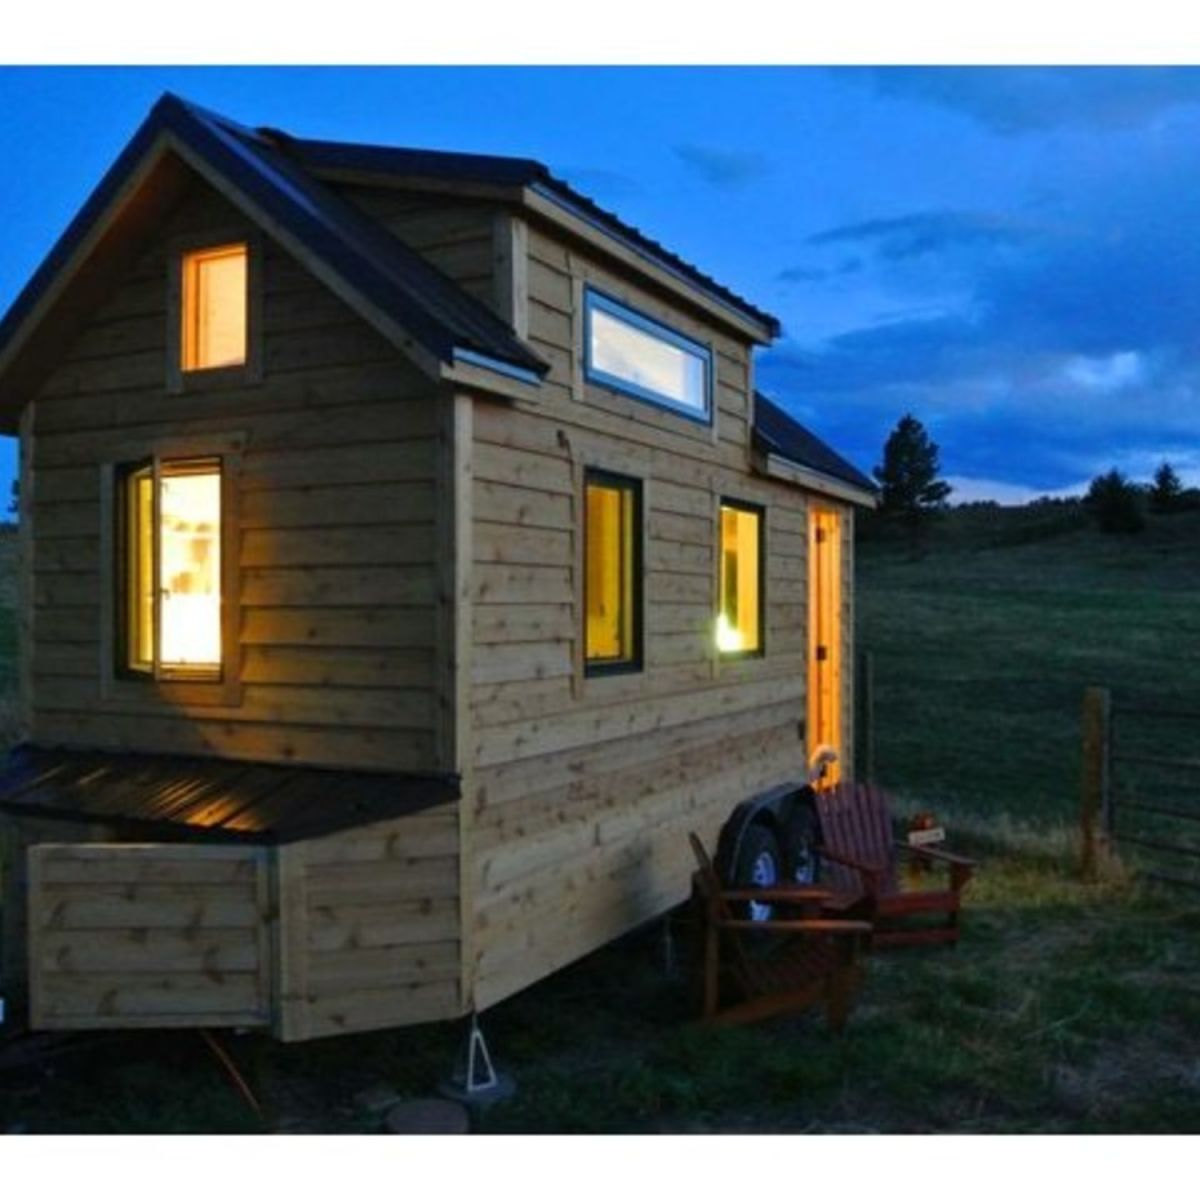 18ft Tiny Home On Wheels As Seen On Tv Tiny House For